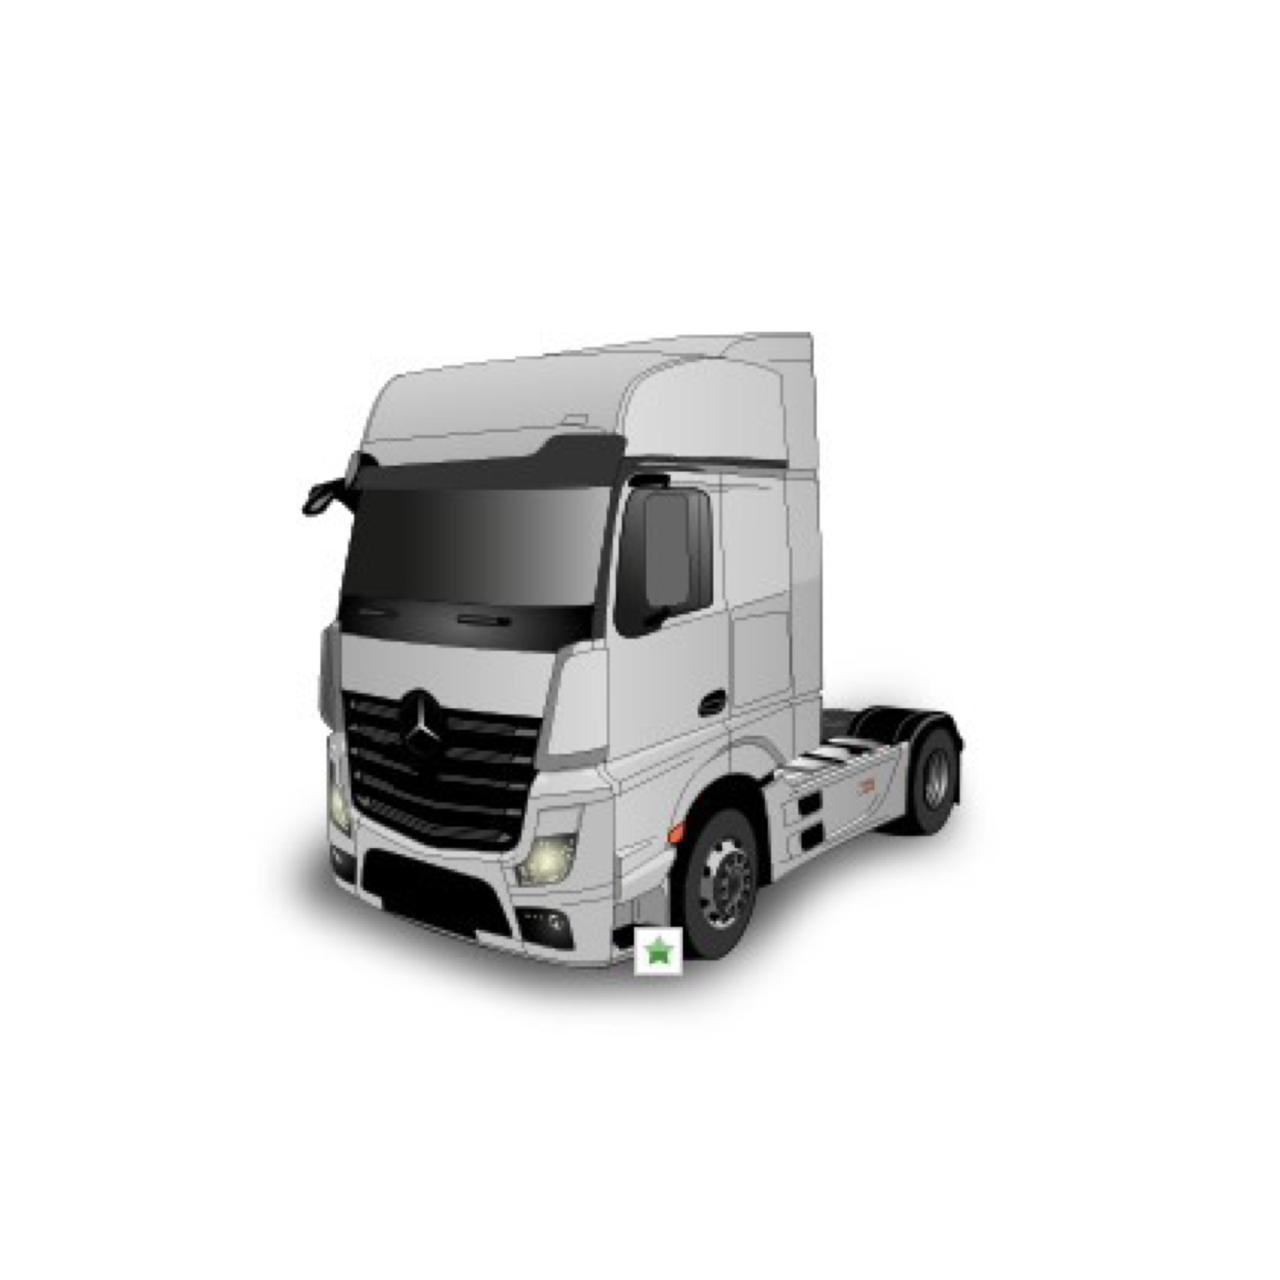 c895f572 ef6a 44a4 9190 b820a8830d67 - Truck Edition (4 User) - Once off